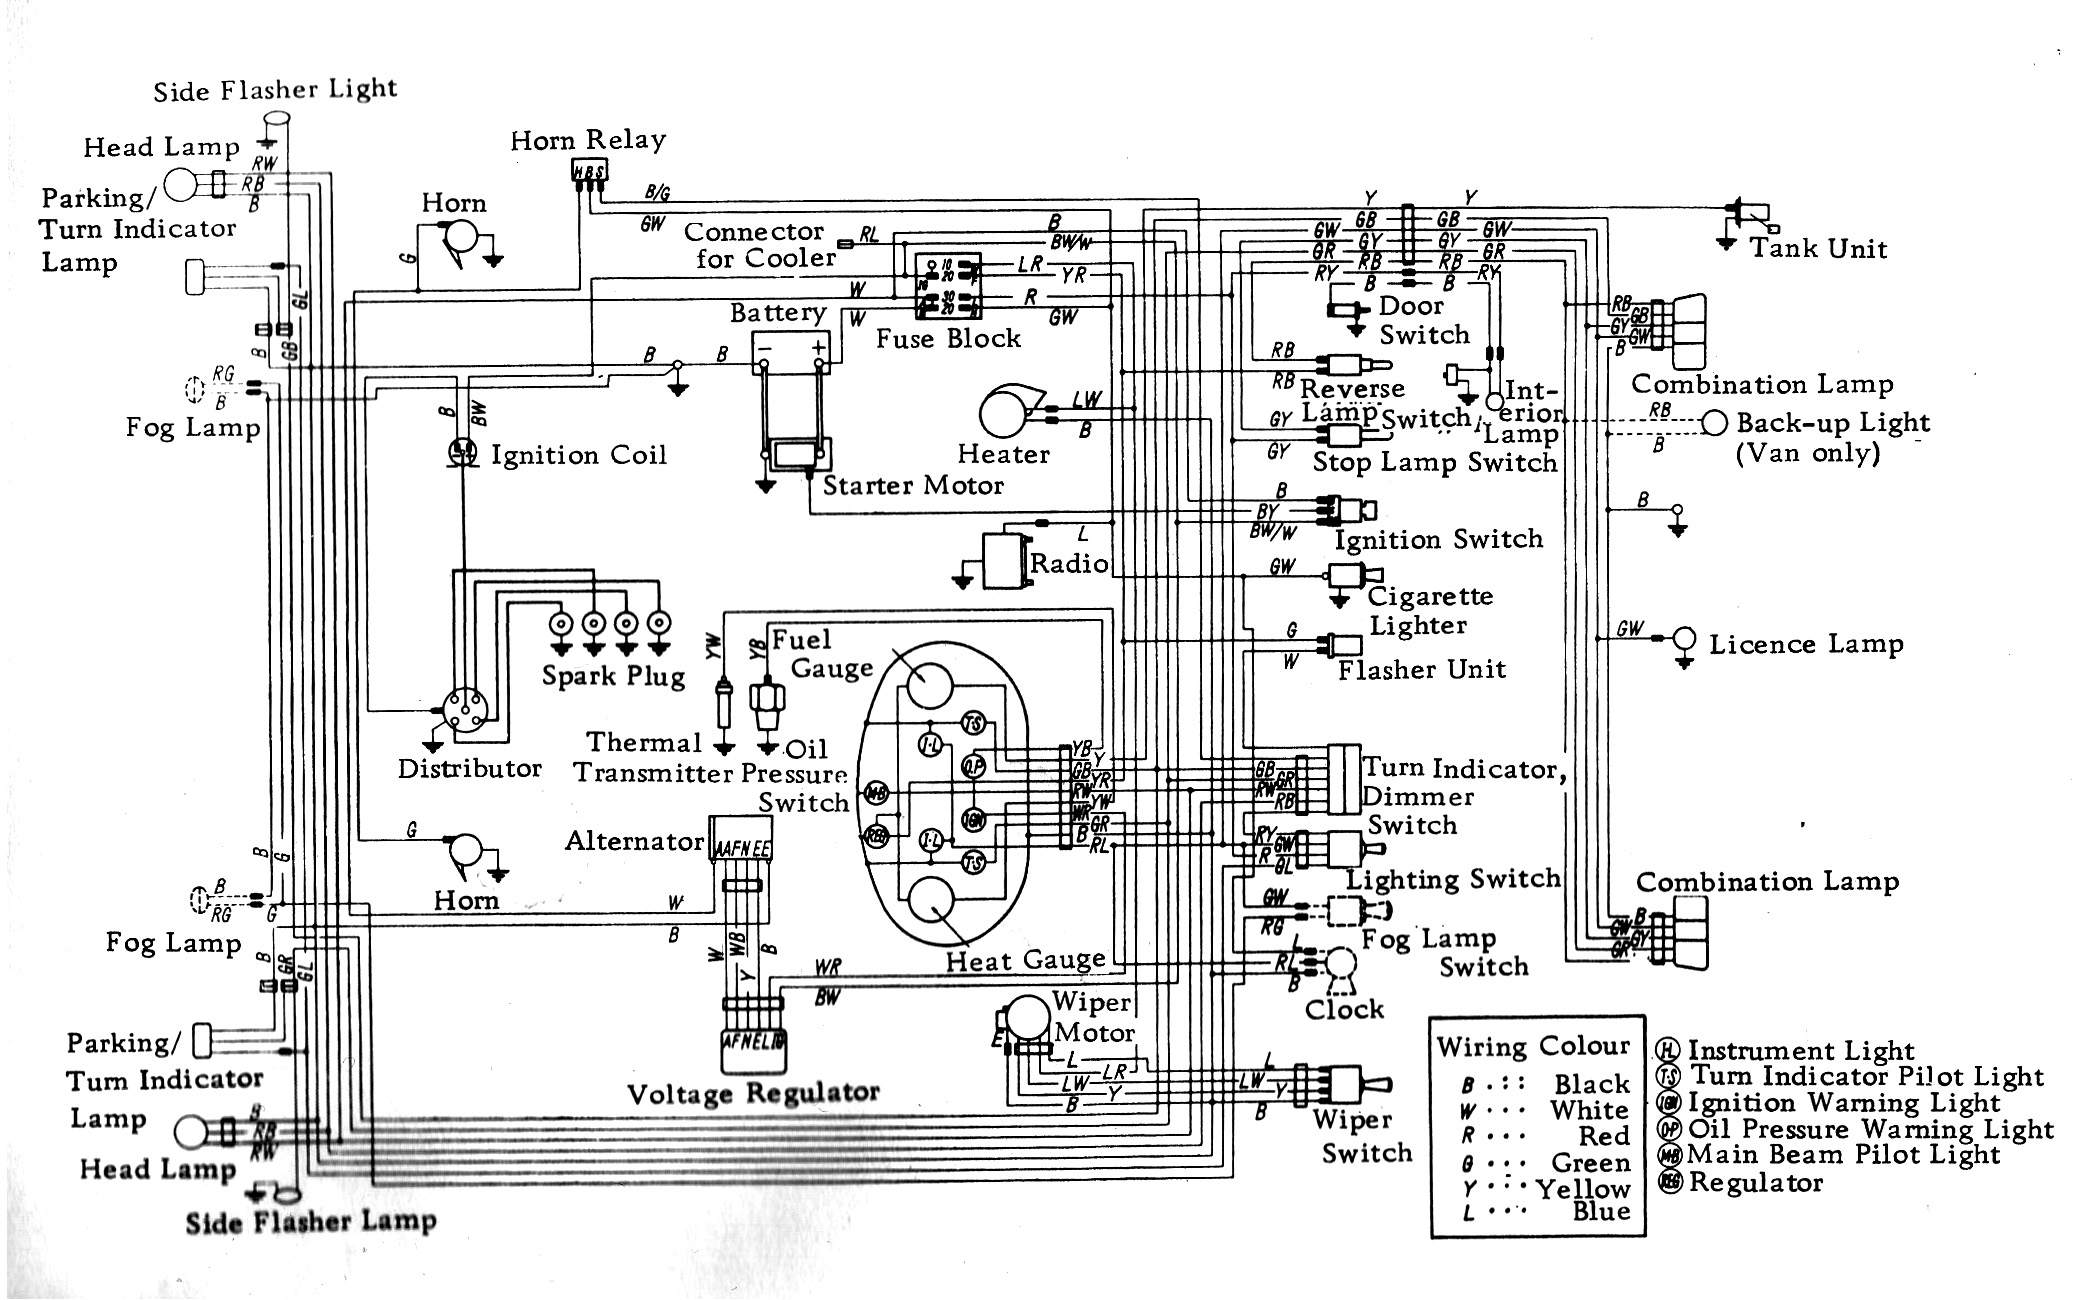 datsun 1200 wiring diagram z3 wiring library diagram rh 5 wfrew mein custombike de  datsun 1200 bakkie wiring diagram